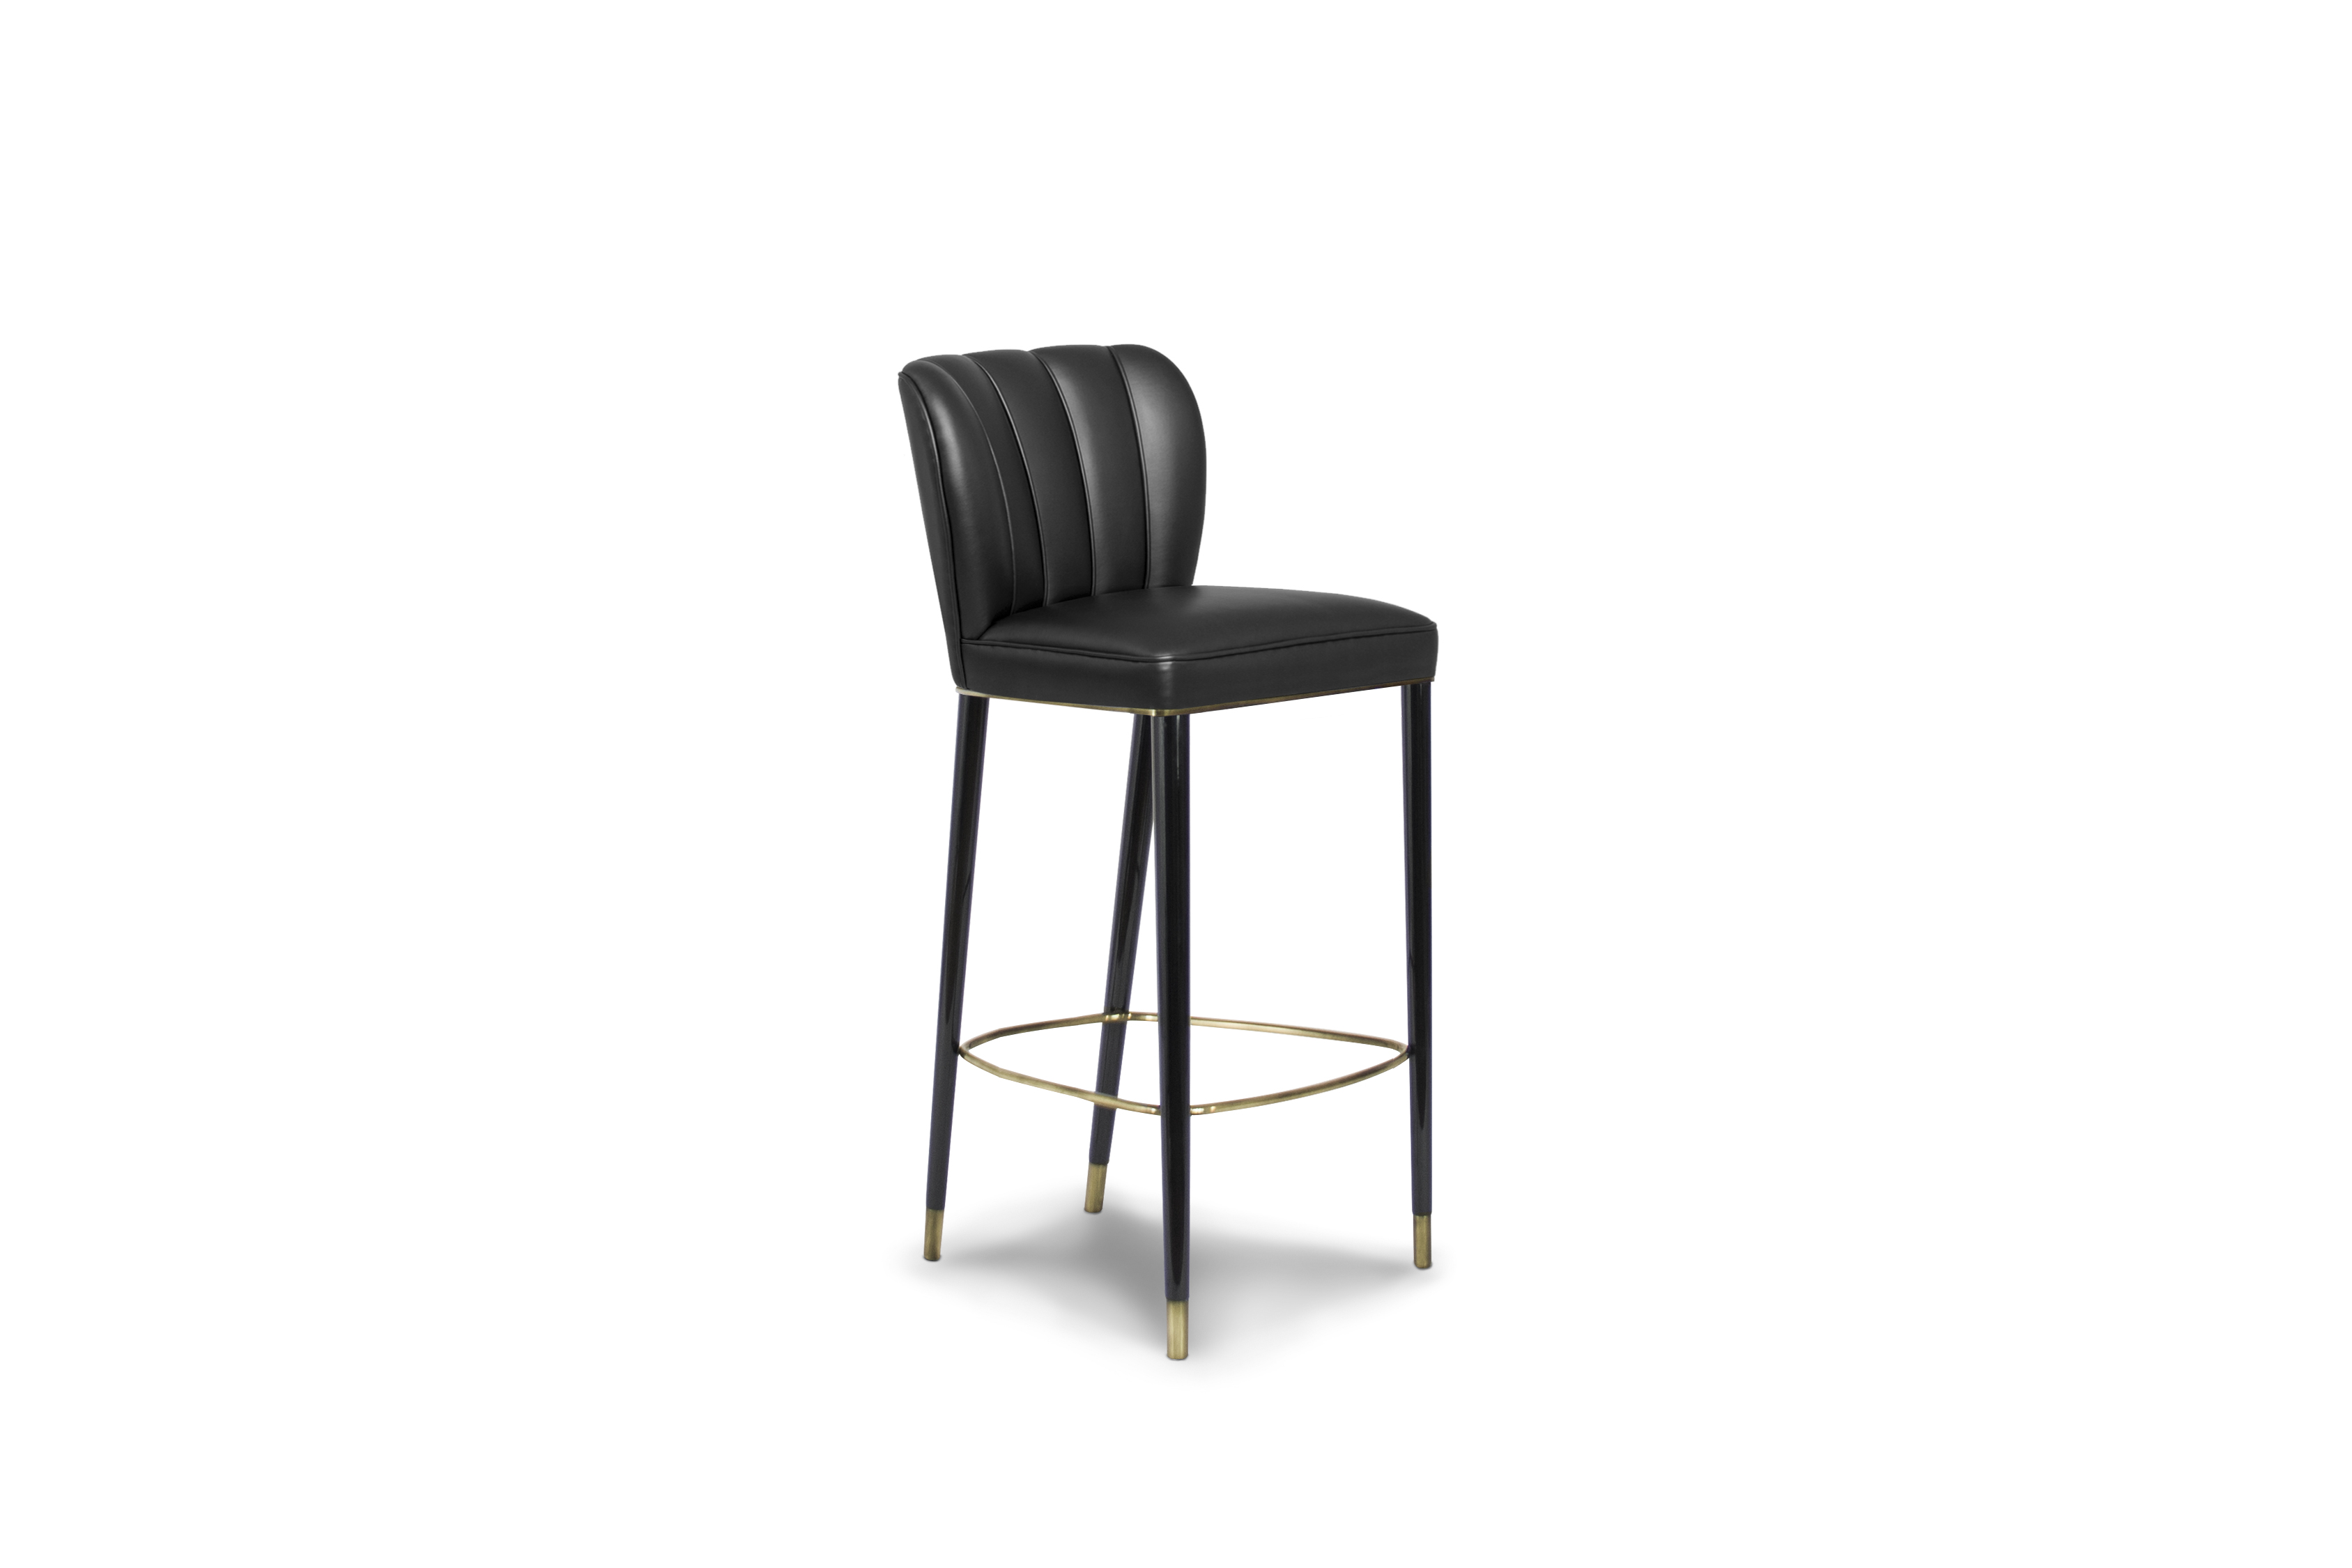 Plan a Stylish and Spooky Halloween with these Black Bar Stools